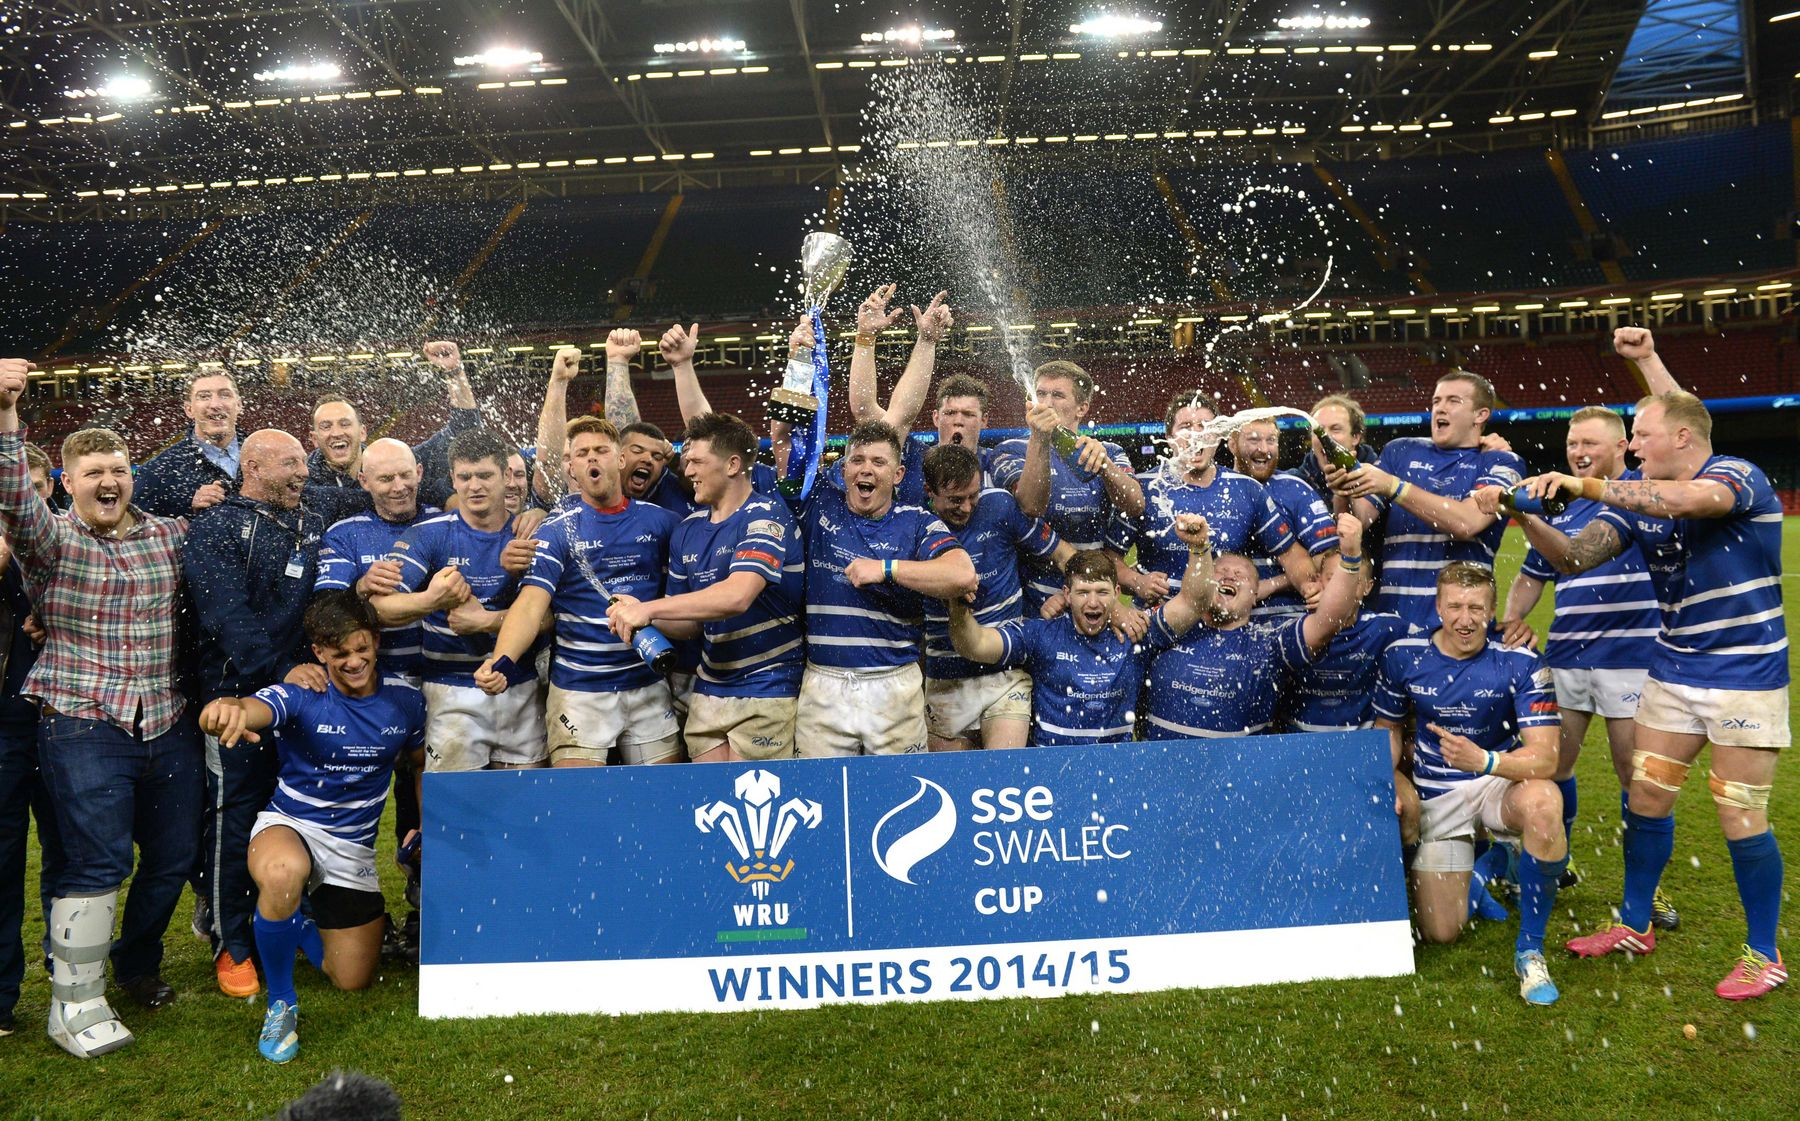 Bridgend travel to Beddau to launch Cup defence